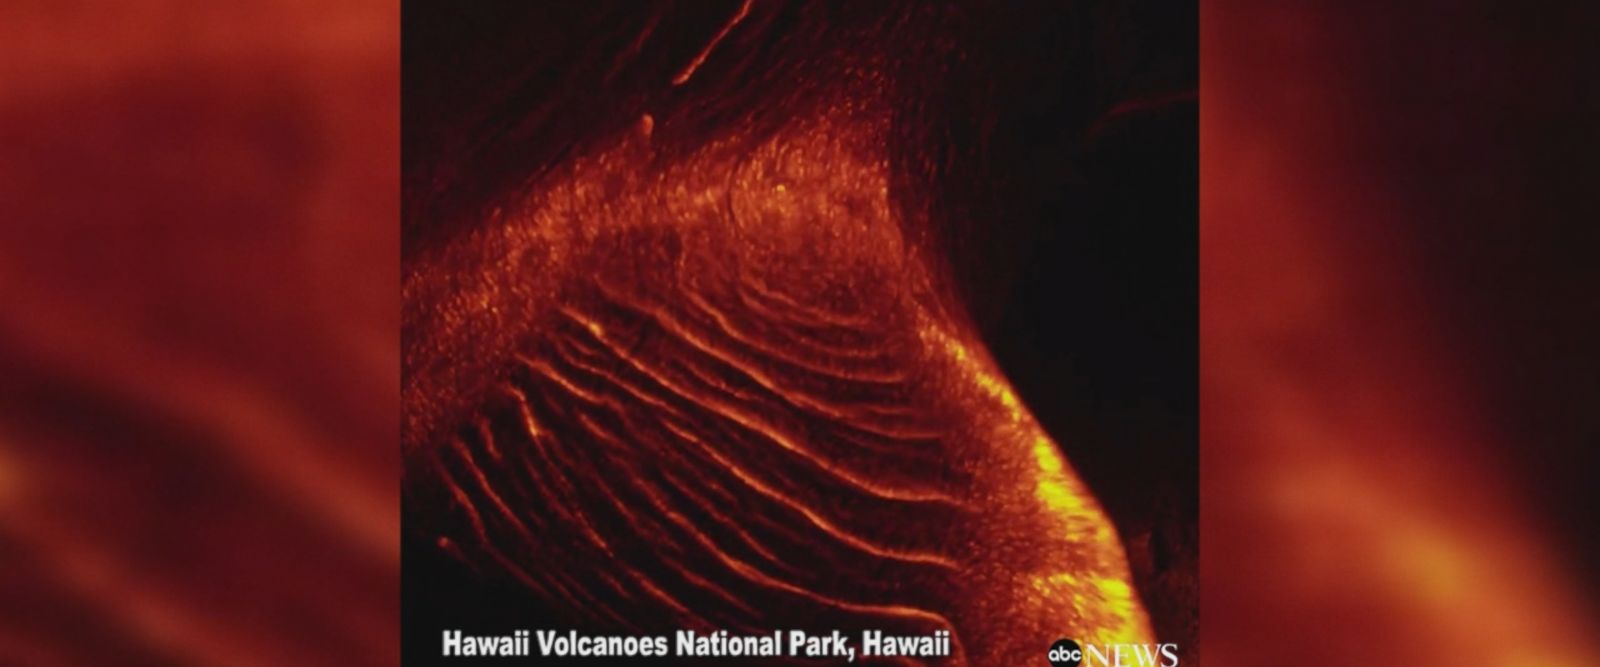 Glowing lava lights up the night at Hawaii Volcanoes National Park.